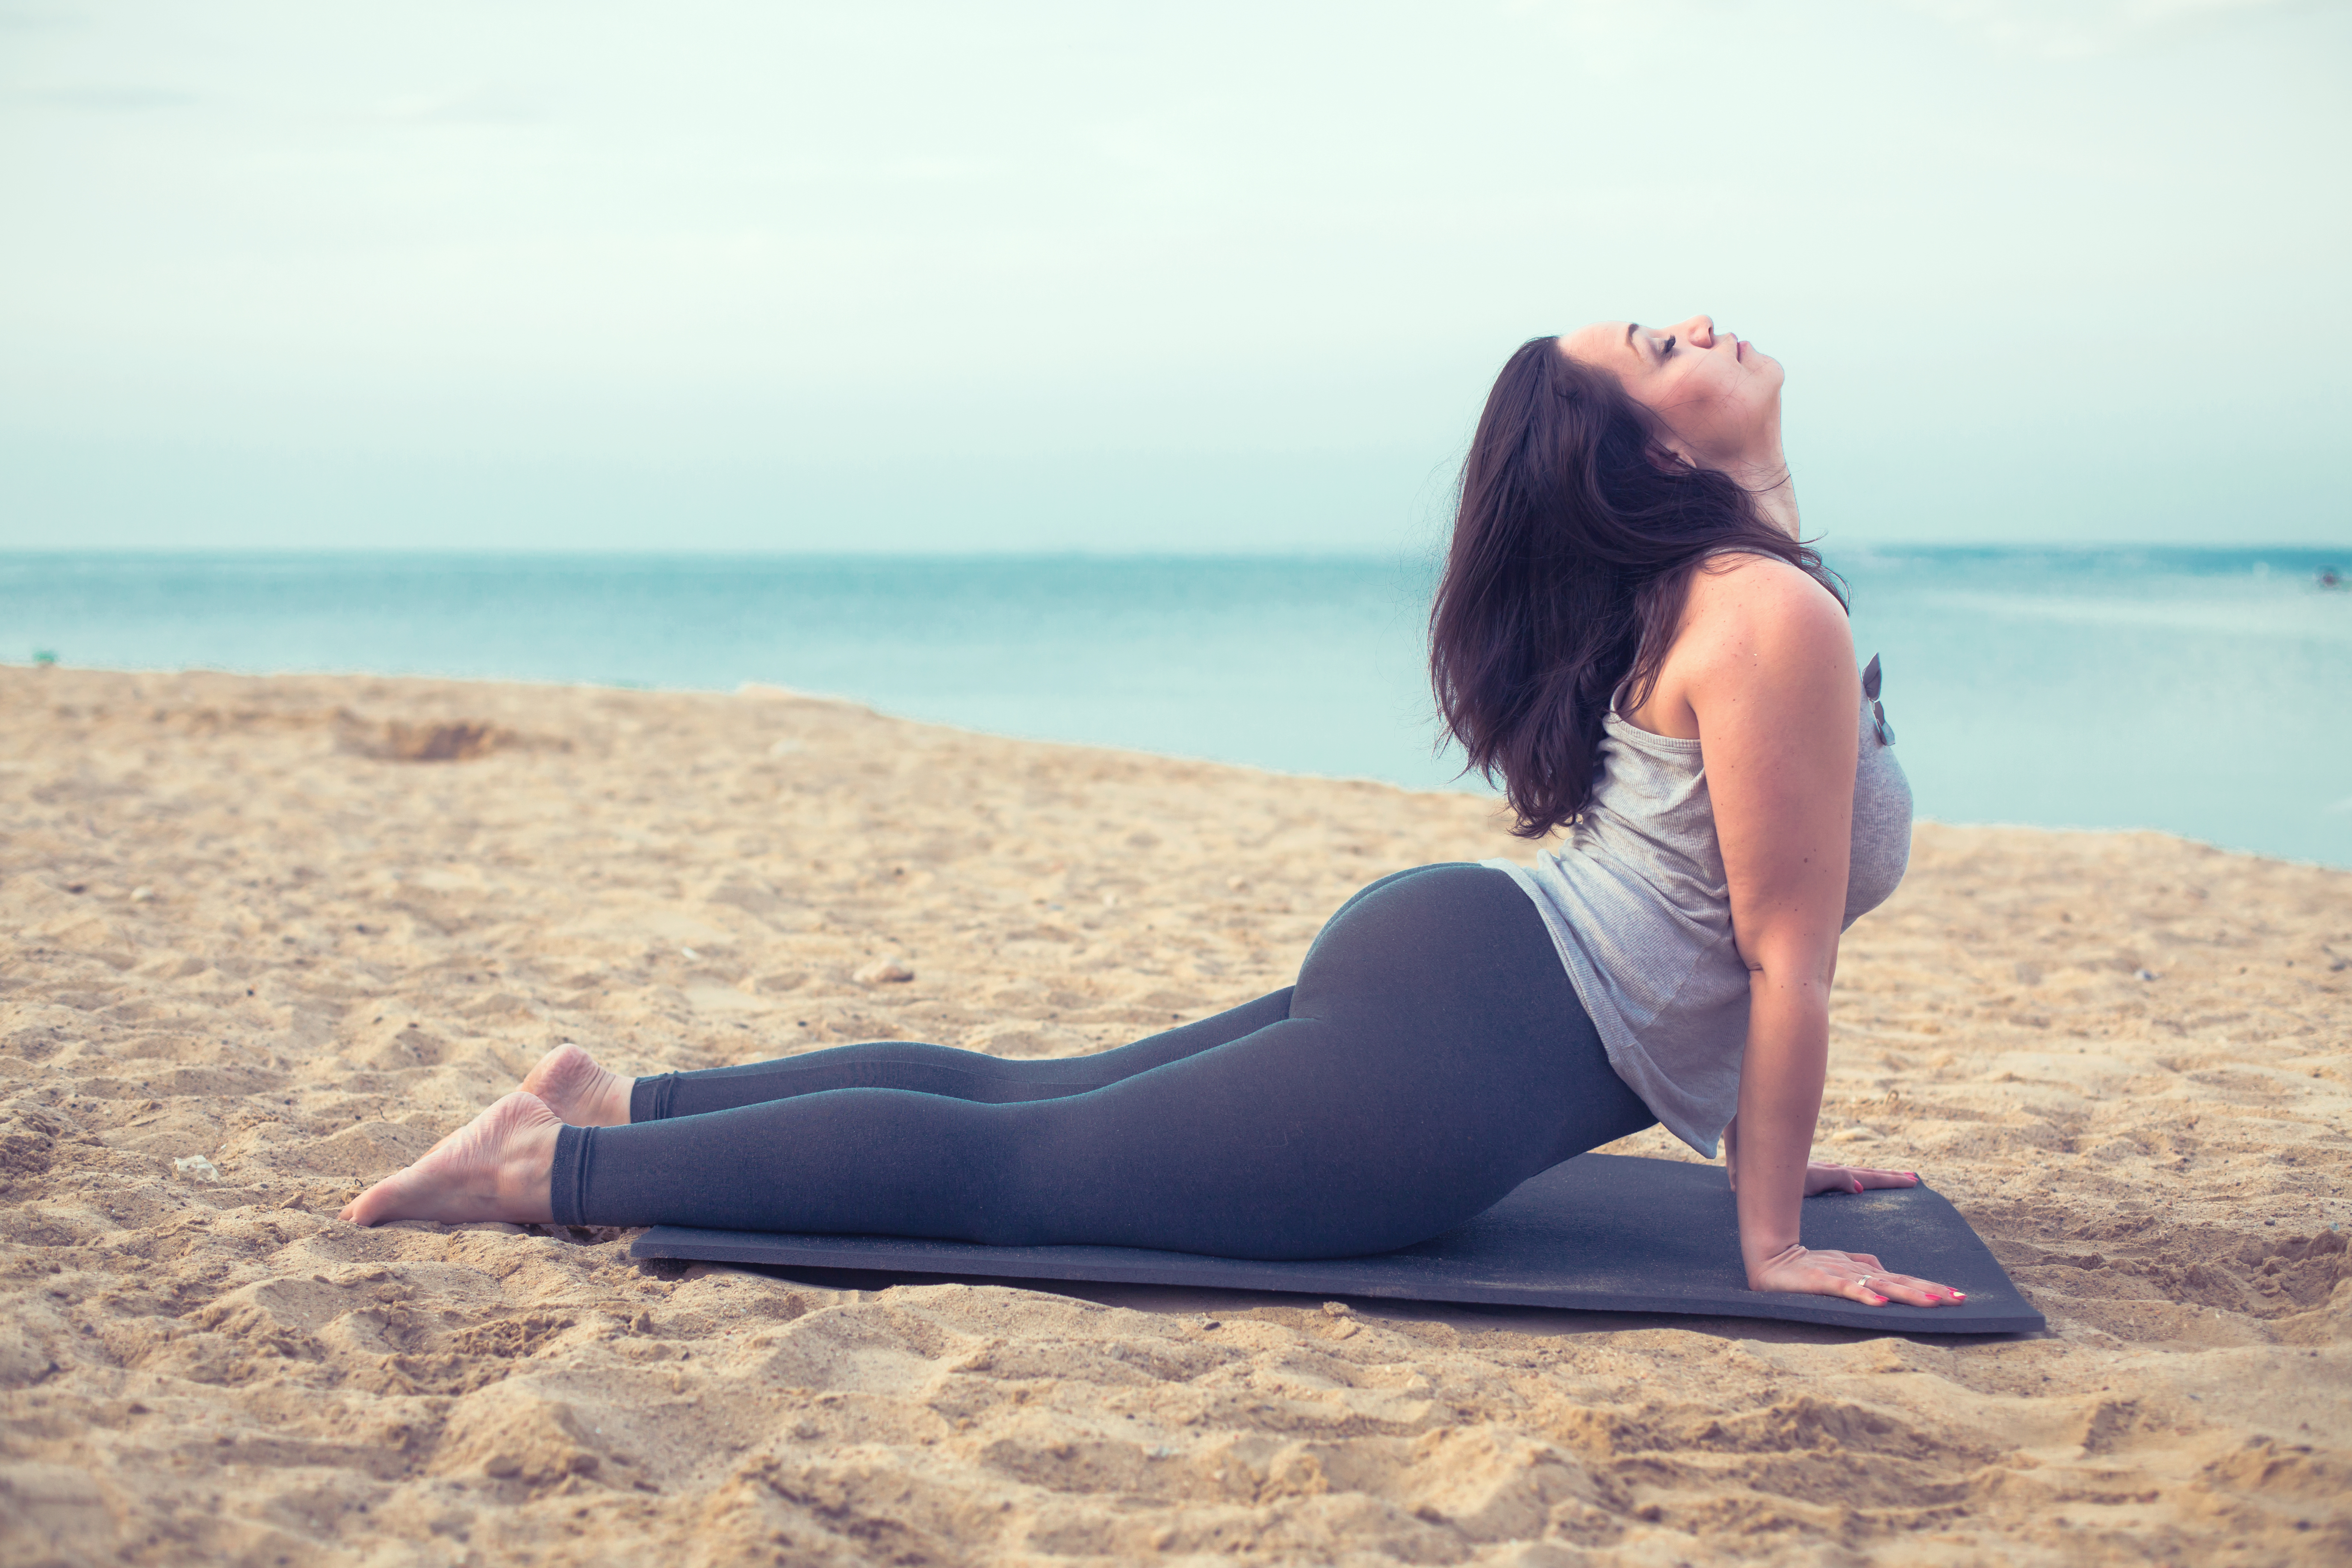 Weight loss pattyyoga young woman doing yoga exercise outdoors ccuart Image collections